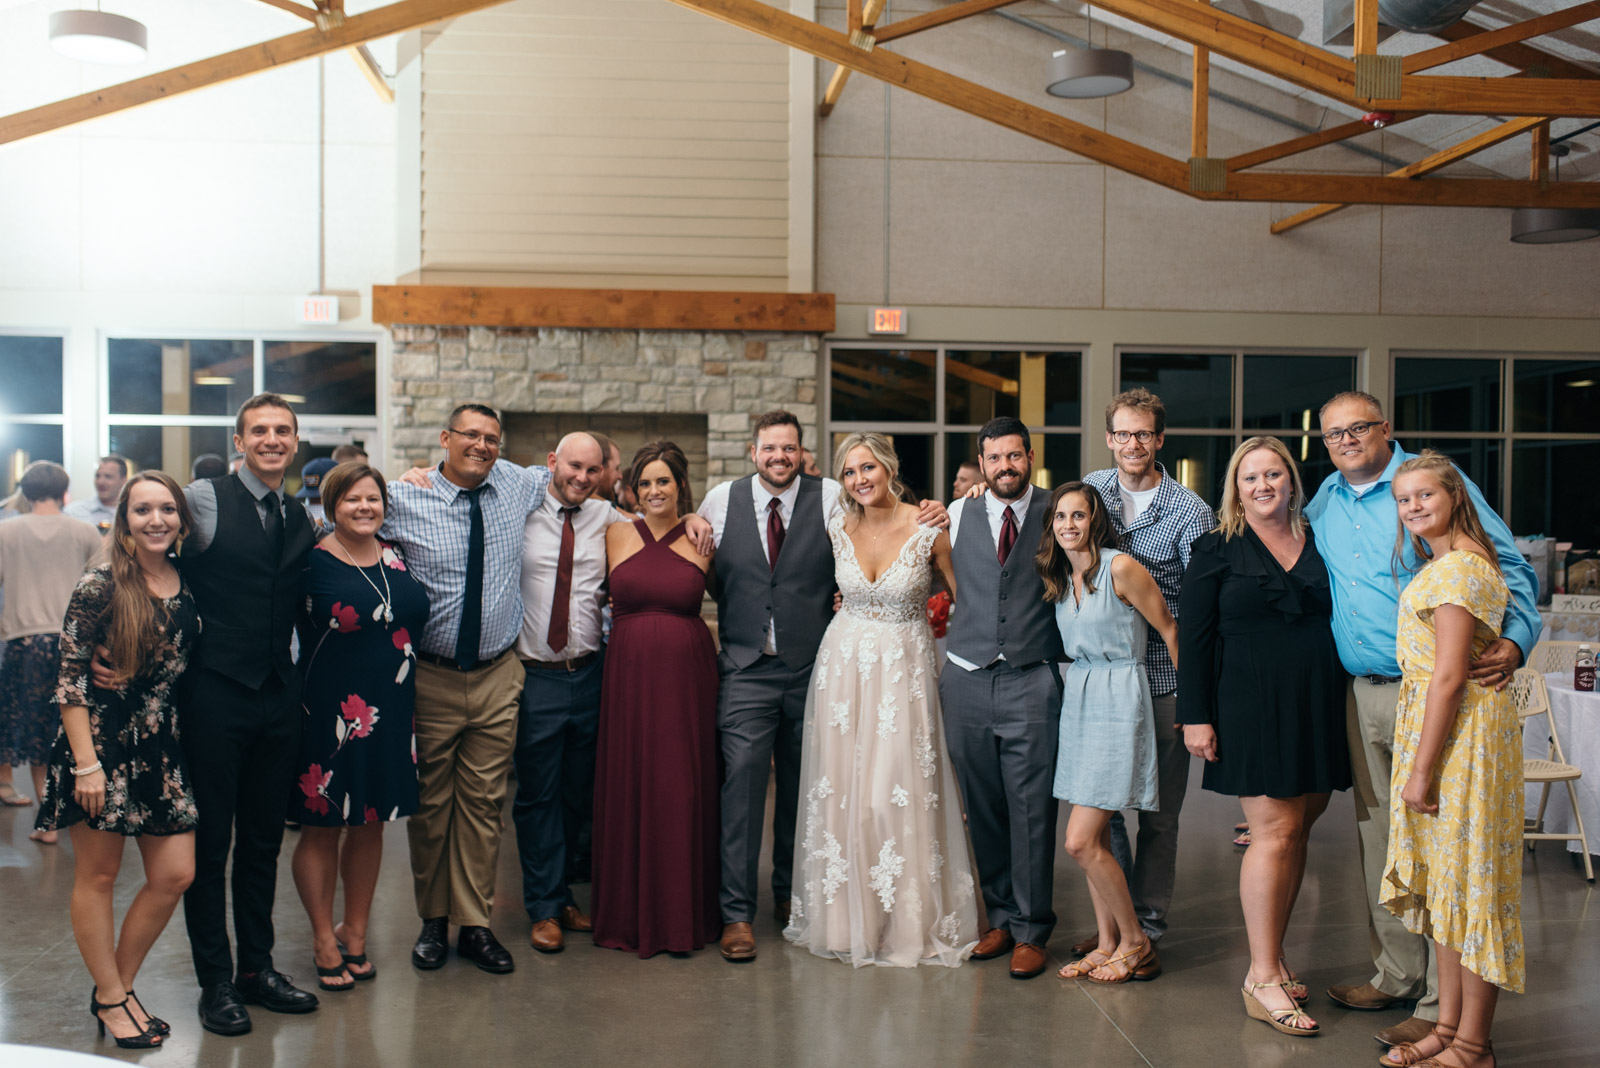 bride and groom with wedding guests Ushers Ferry Historic Village